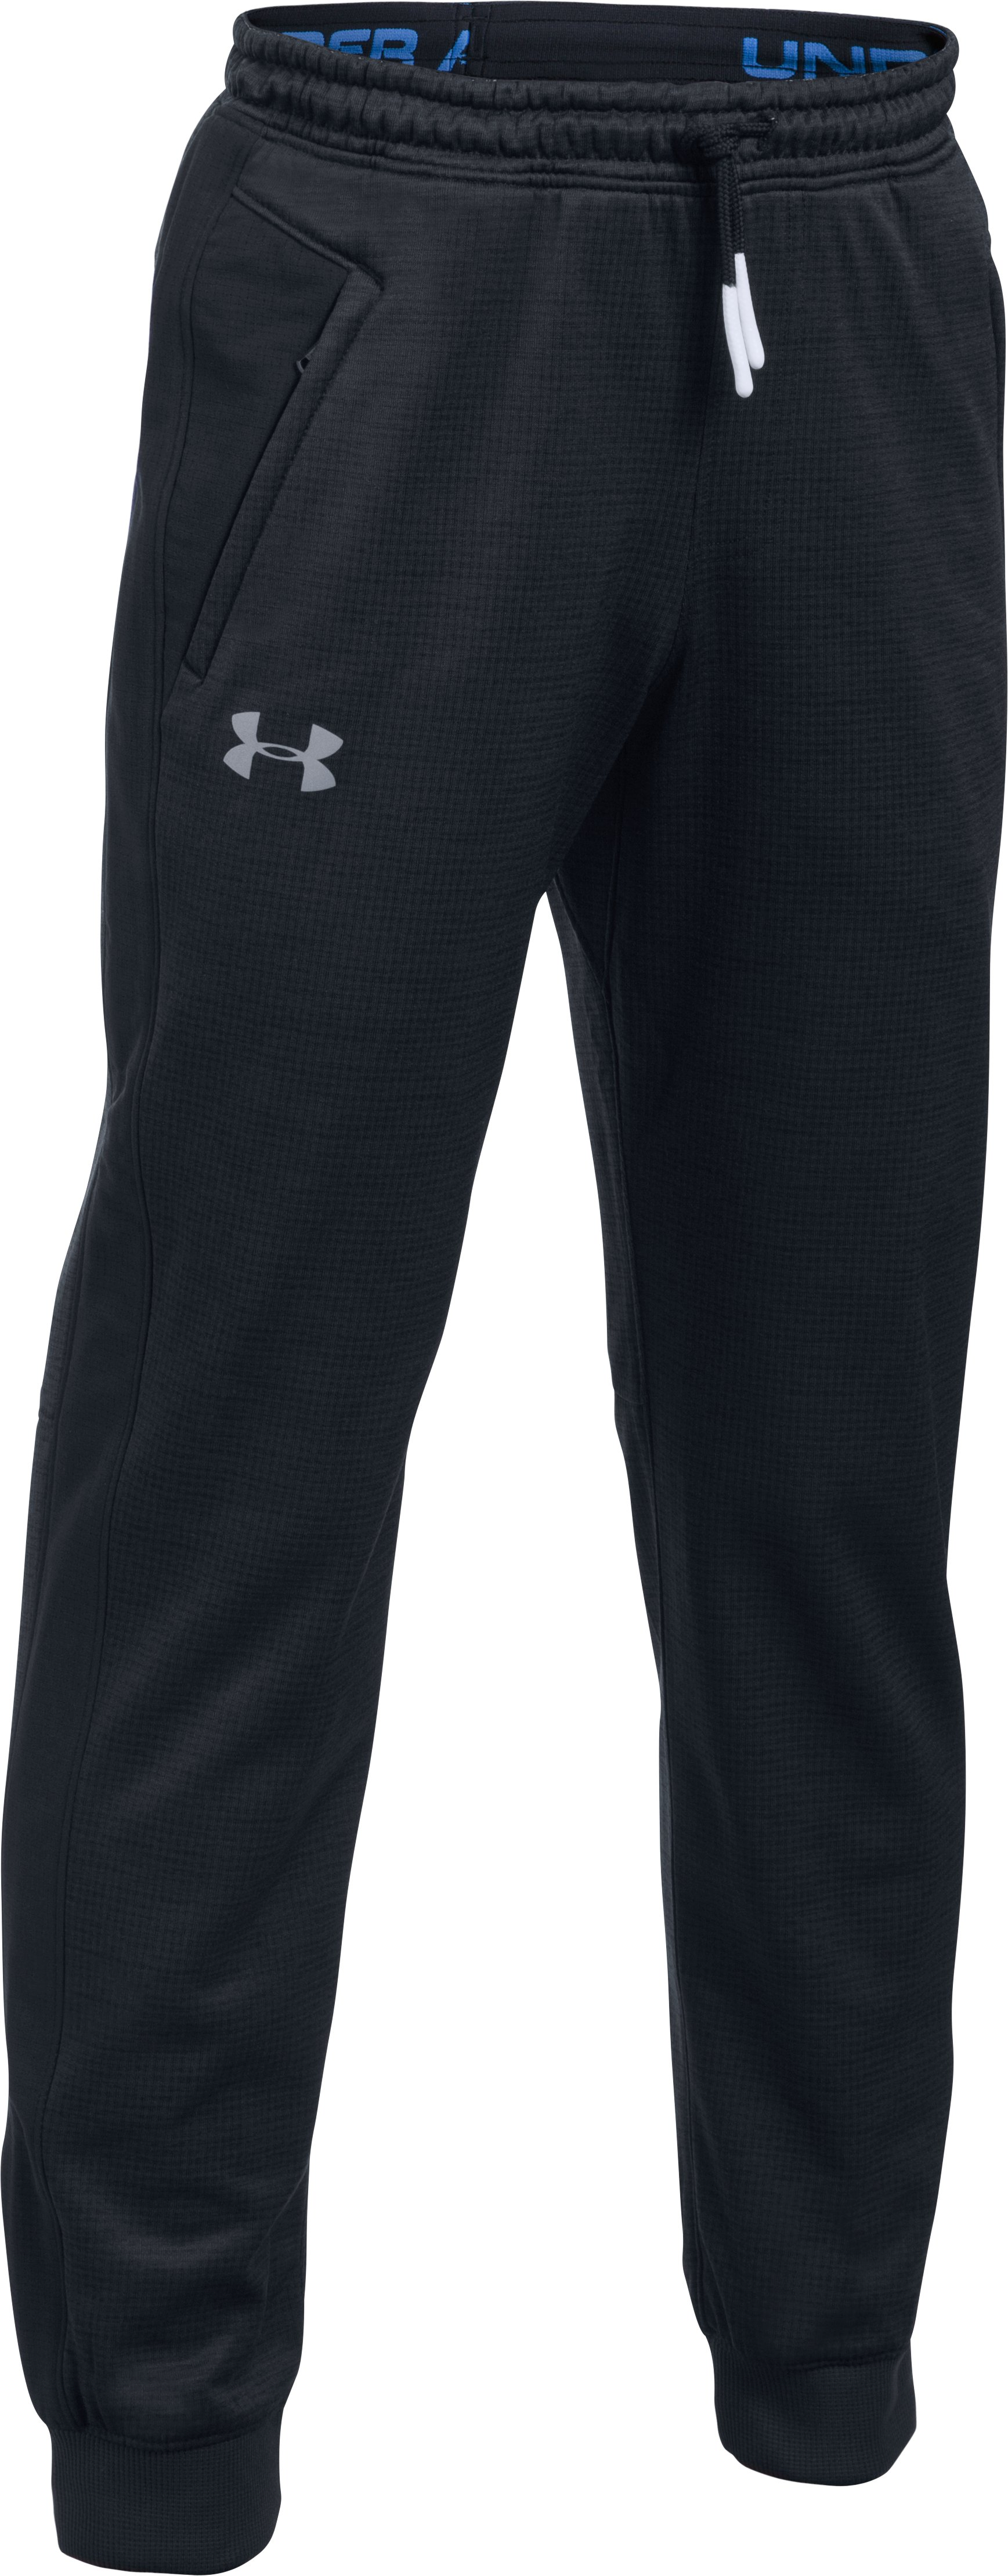 Boys' ColdGear® Reactor Pants, ANTHRACITE